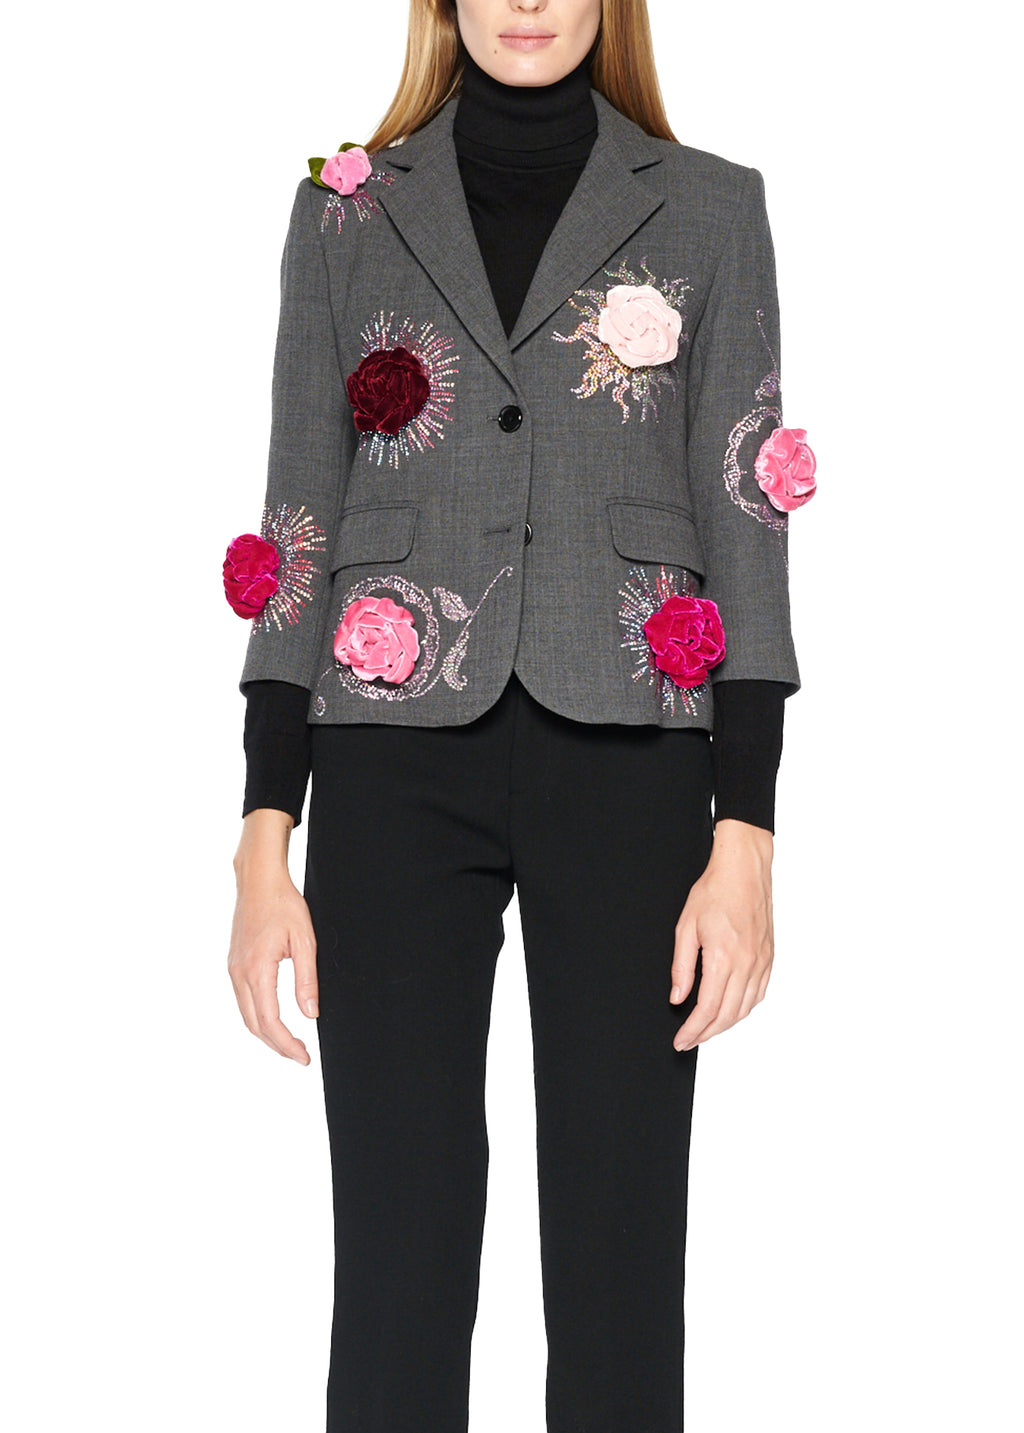 Velvet Roses All Over Blazer